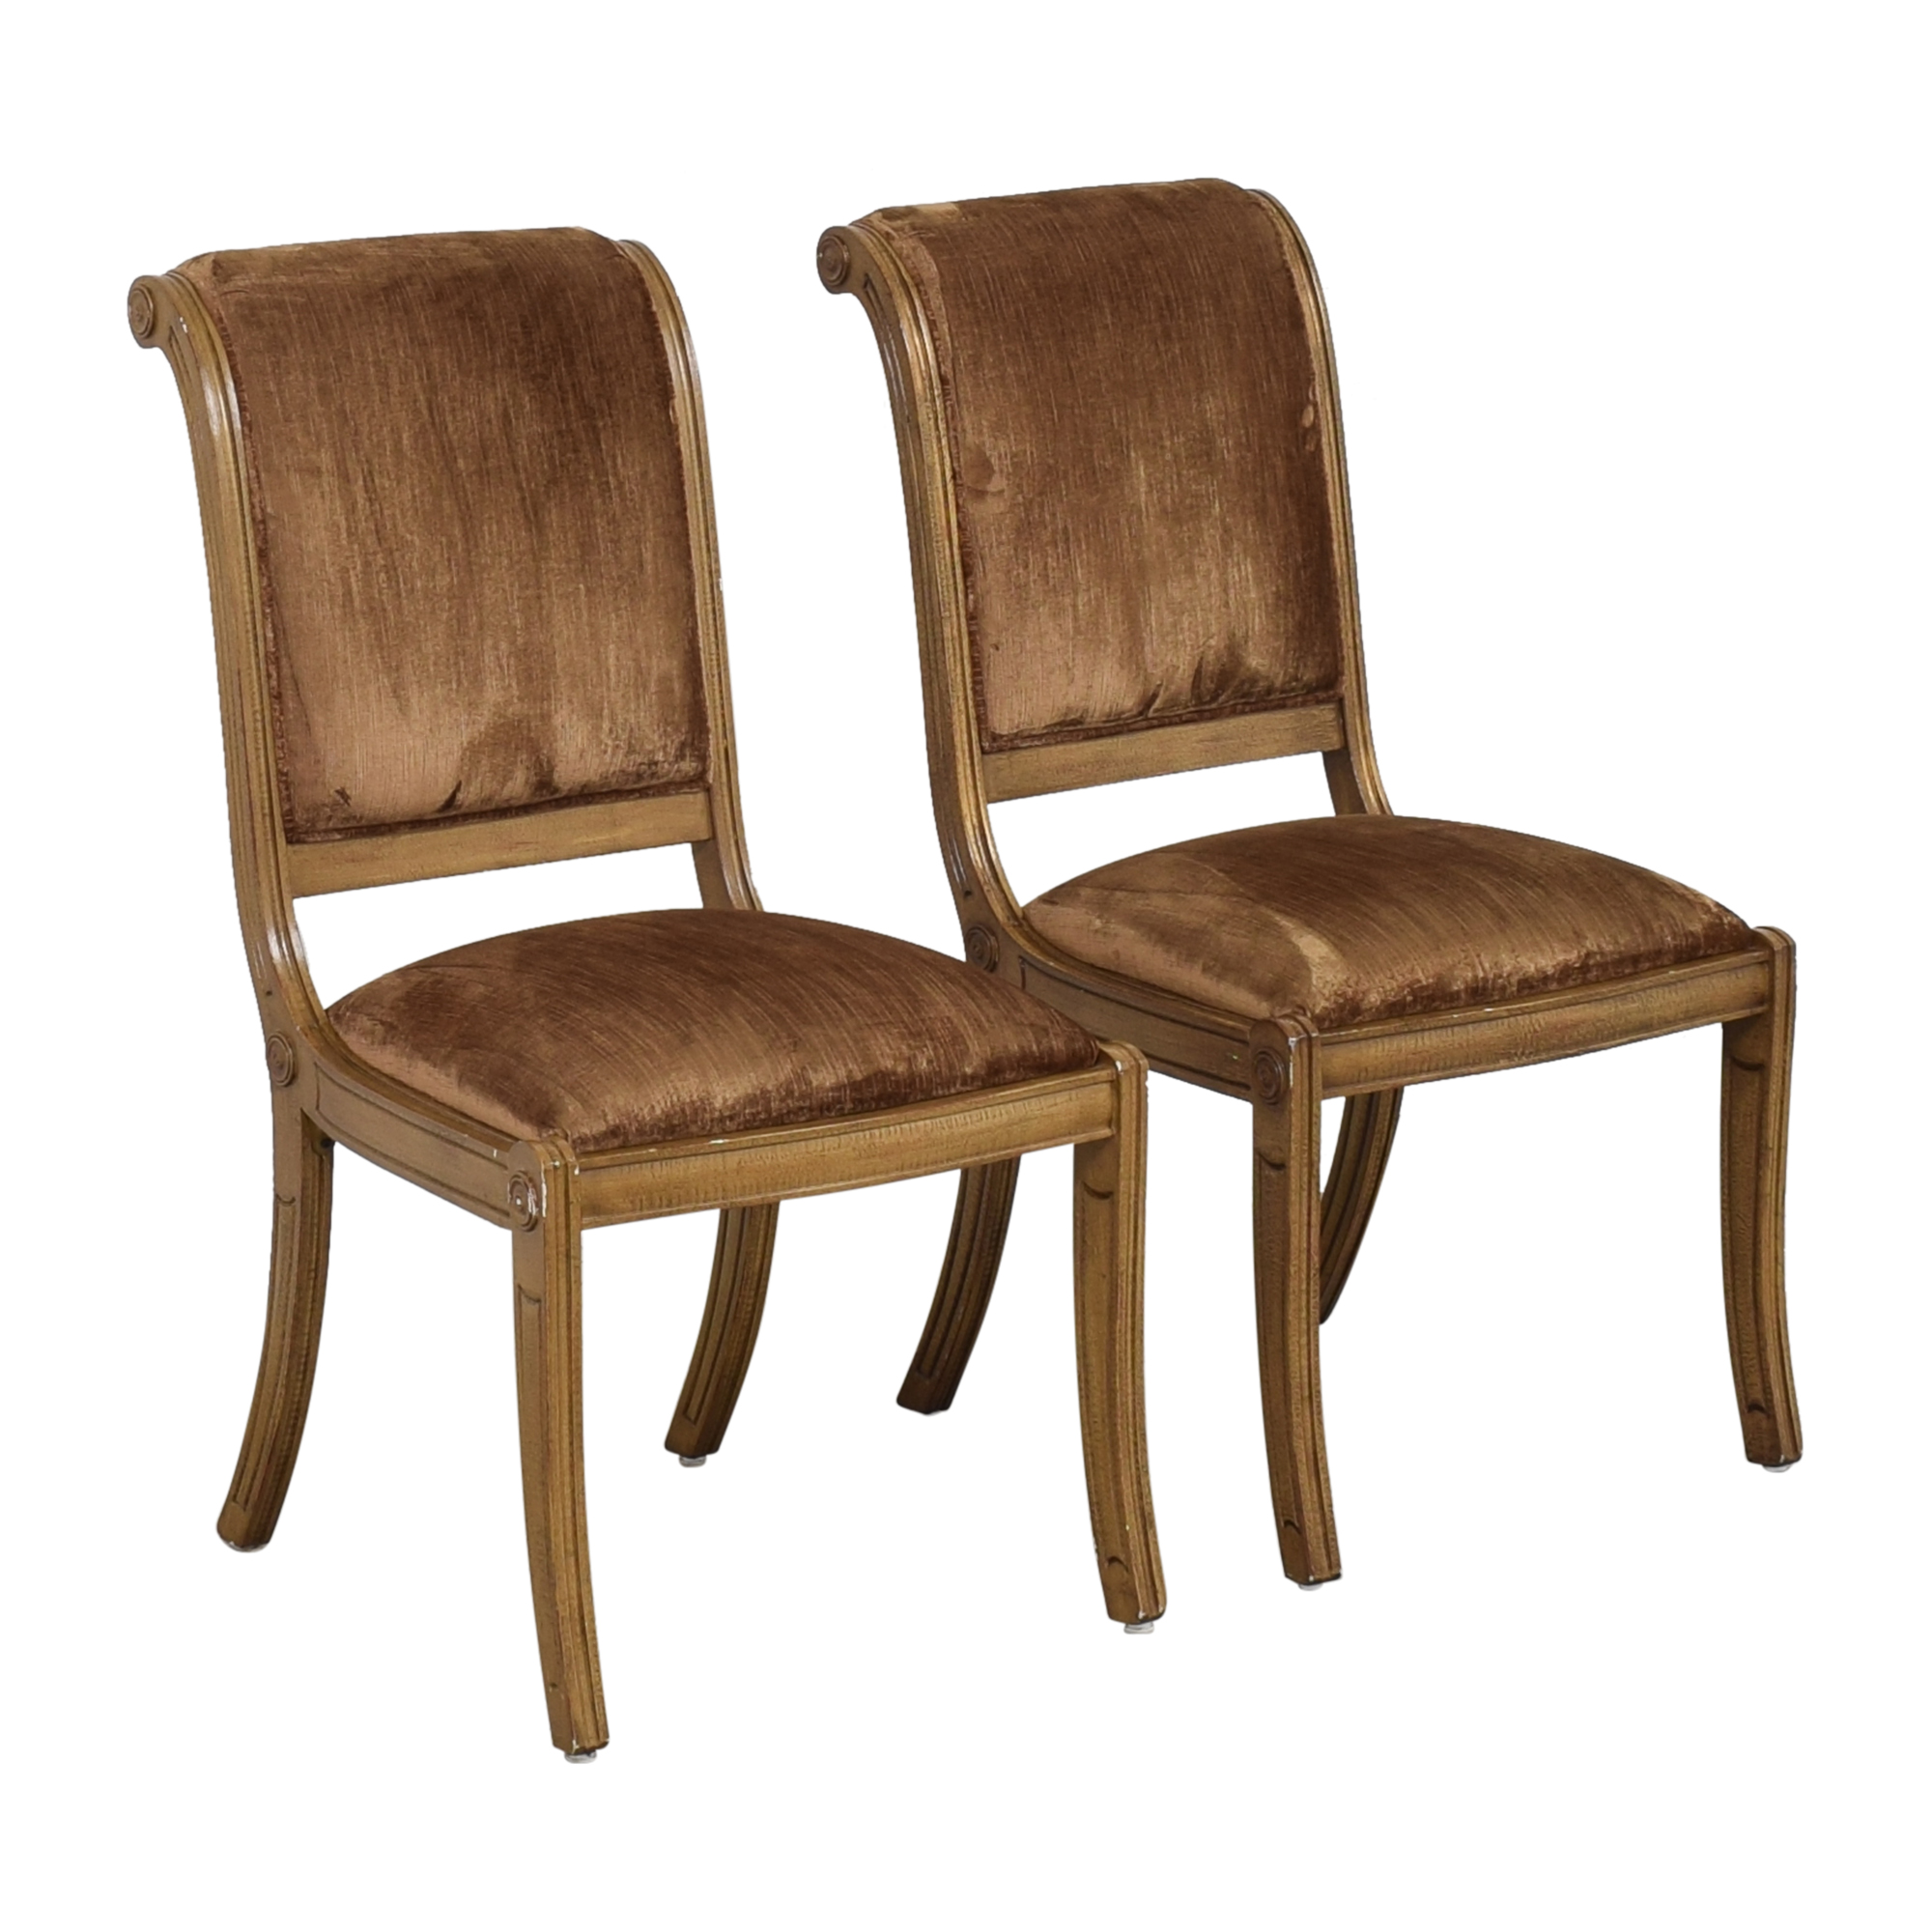 Robert Allen Rodeo Side Dining Chairs / Dining Chairs